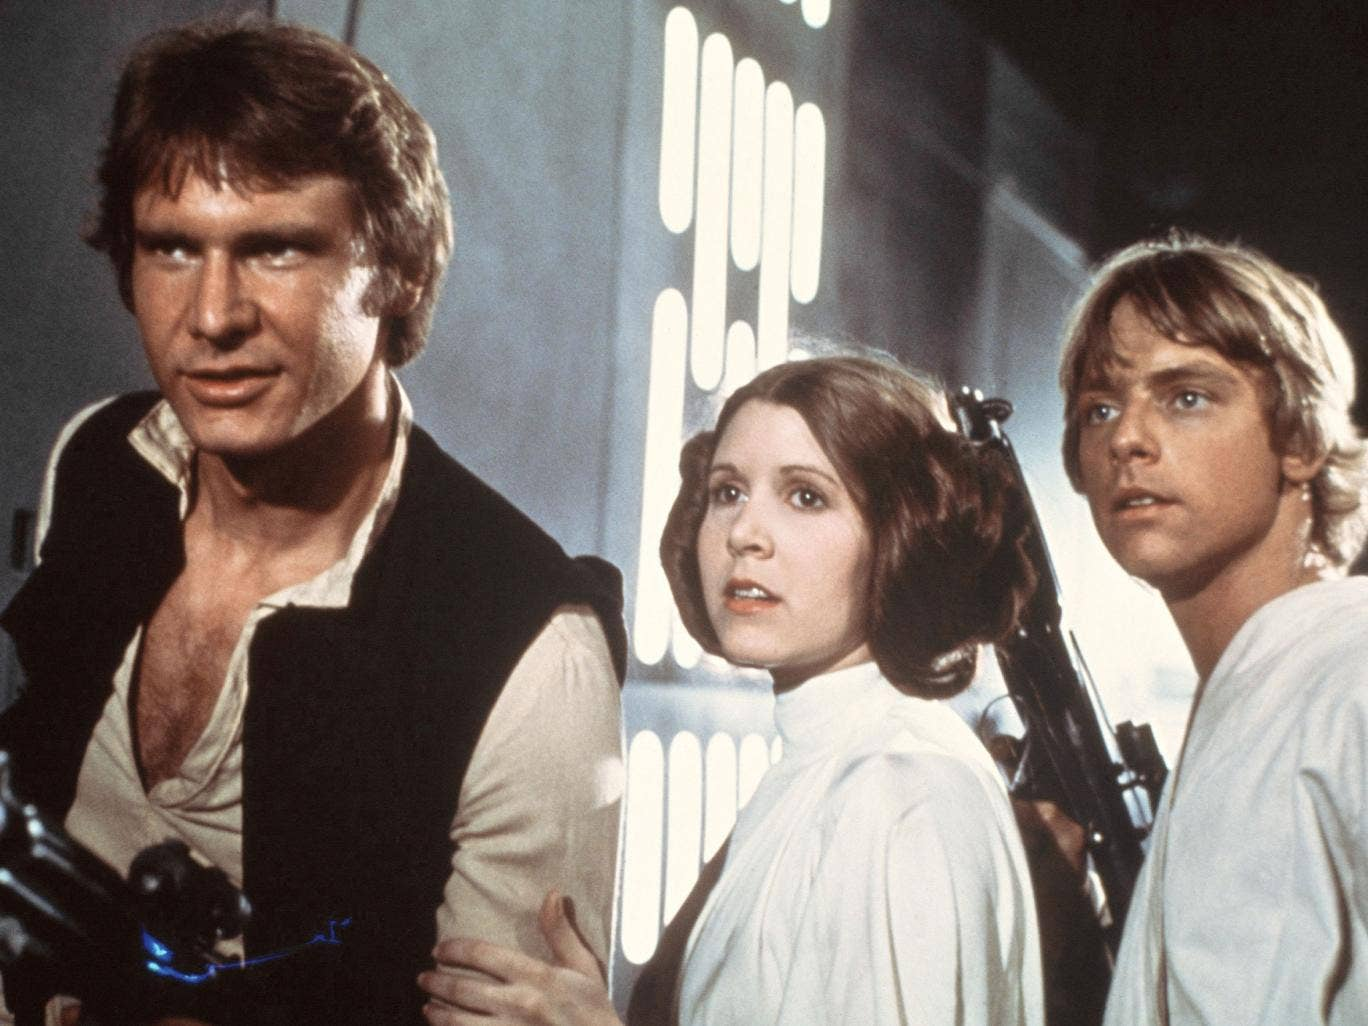 The original Star Wars trio of Harrison Ford, Carrie Fisher and Mark Hamill